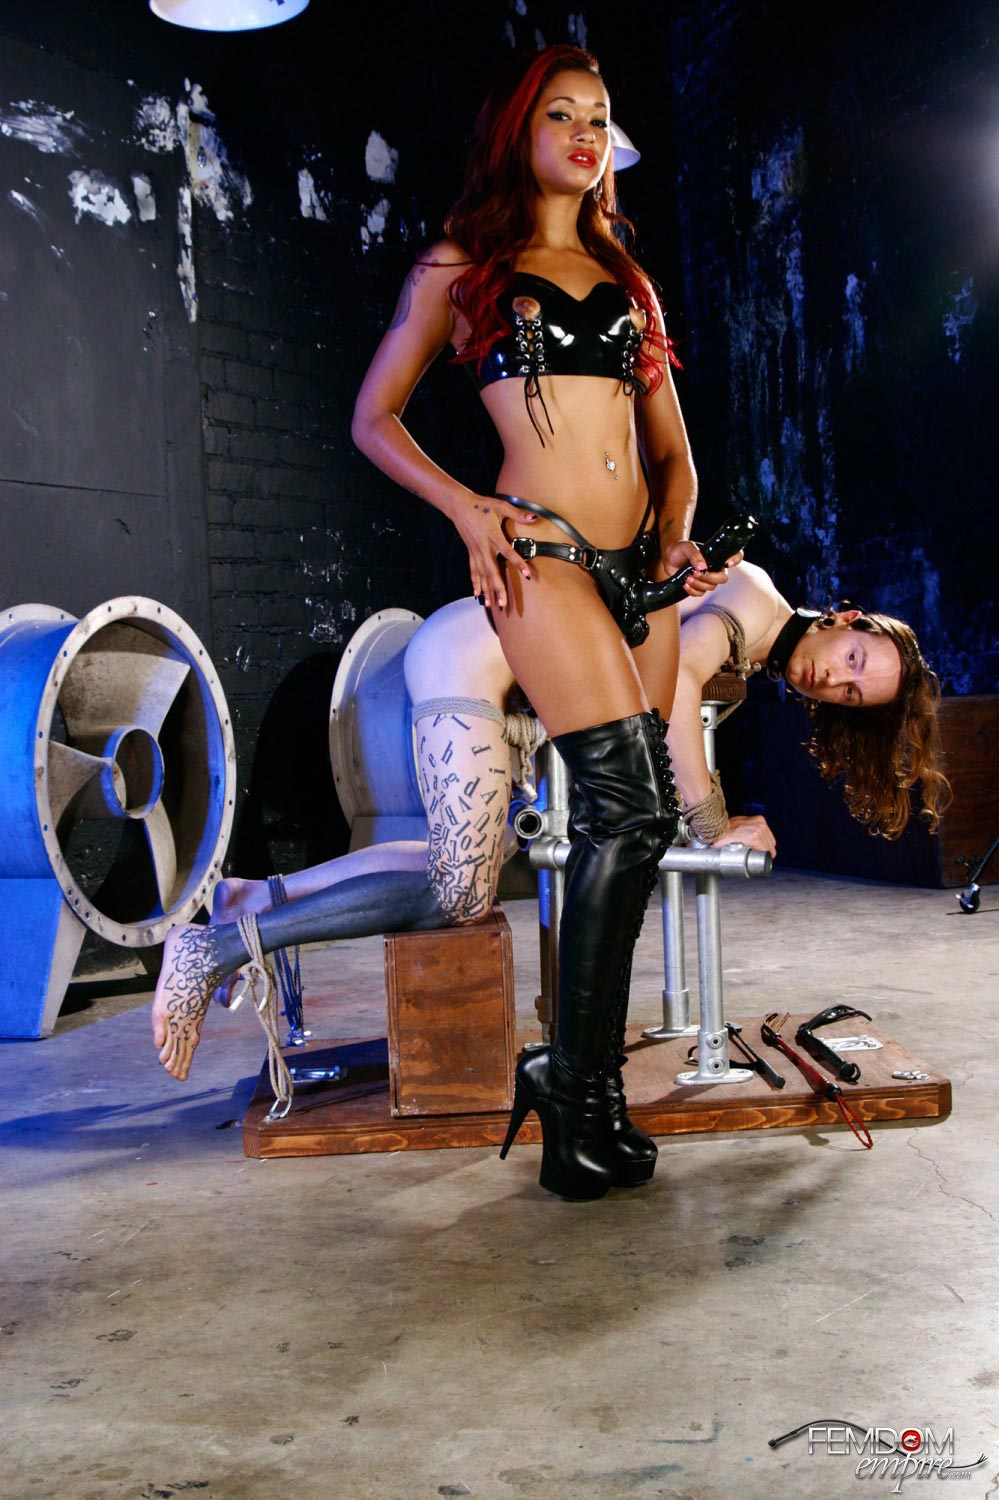 Free bdsm femdom extreme humiliation sexual